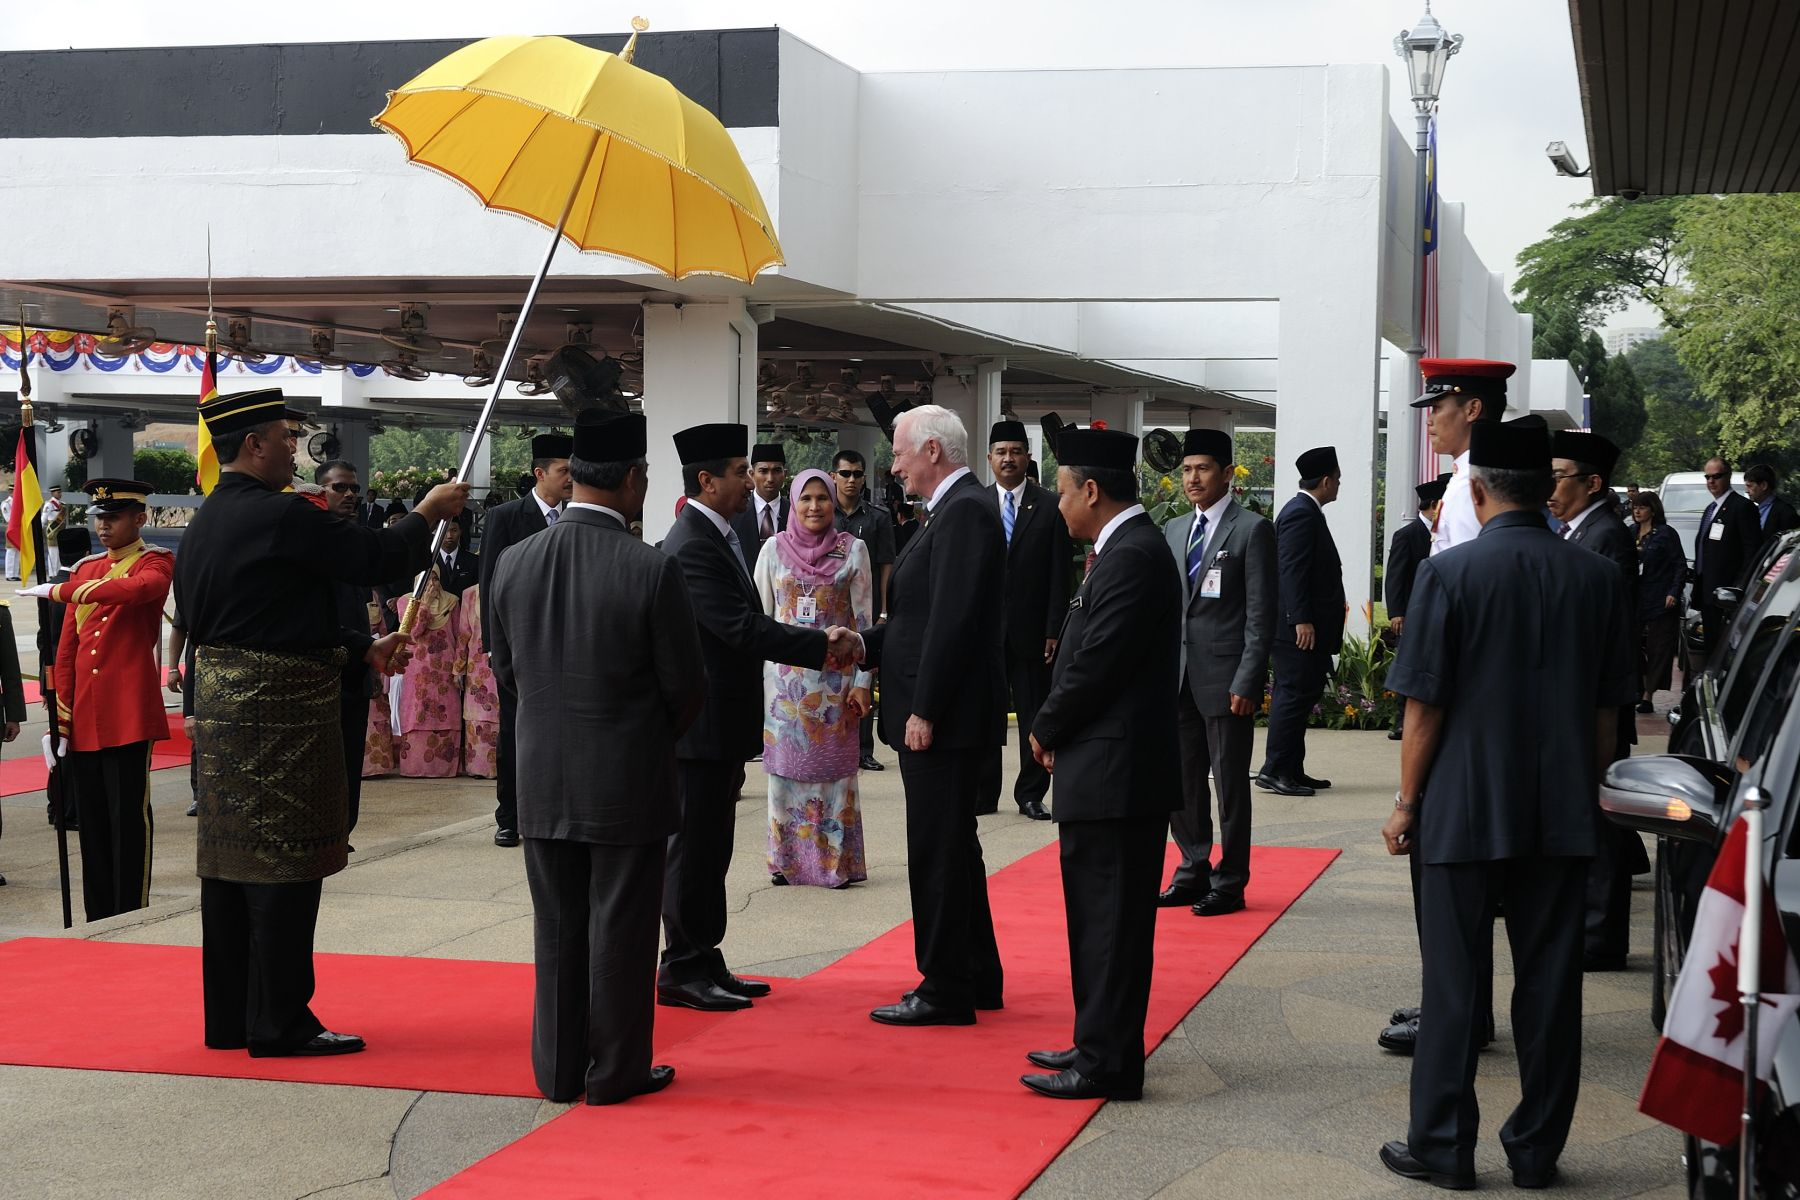 The Governor General was officially welcomed to Malaysia by His Majesty The Yang di-Pertuan Agong, King of Malaysia, during a ceremony with full military honours in Parliament Square, Kuala Lumpur.